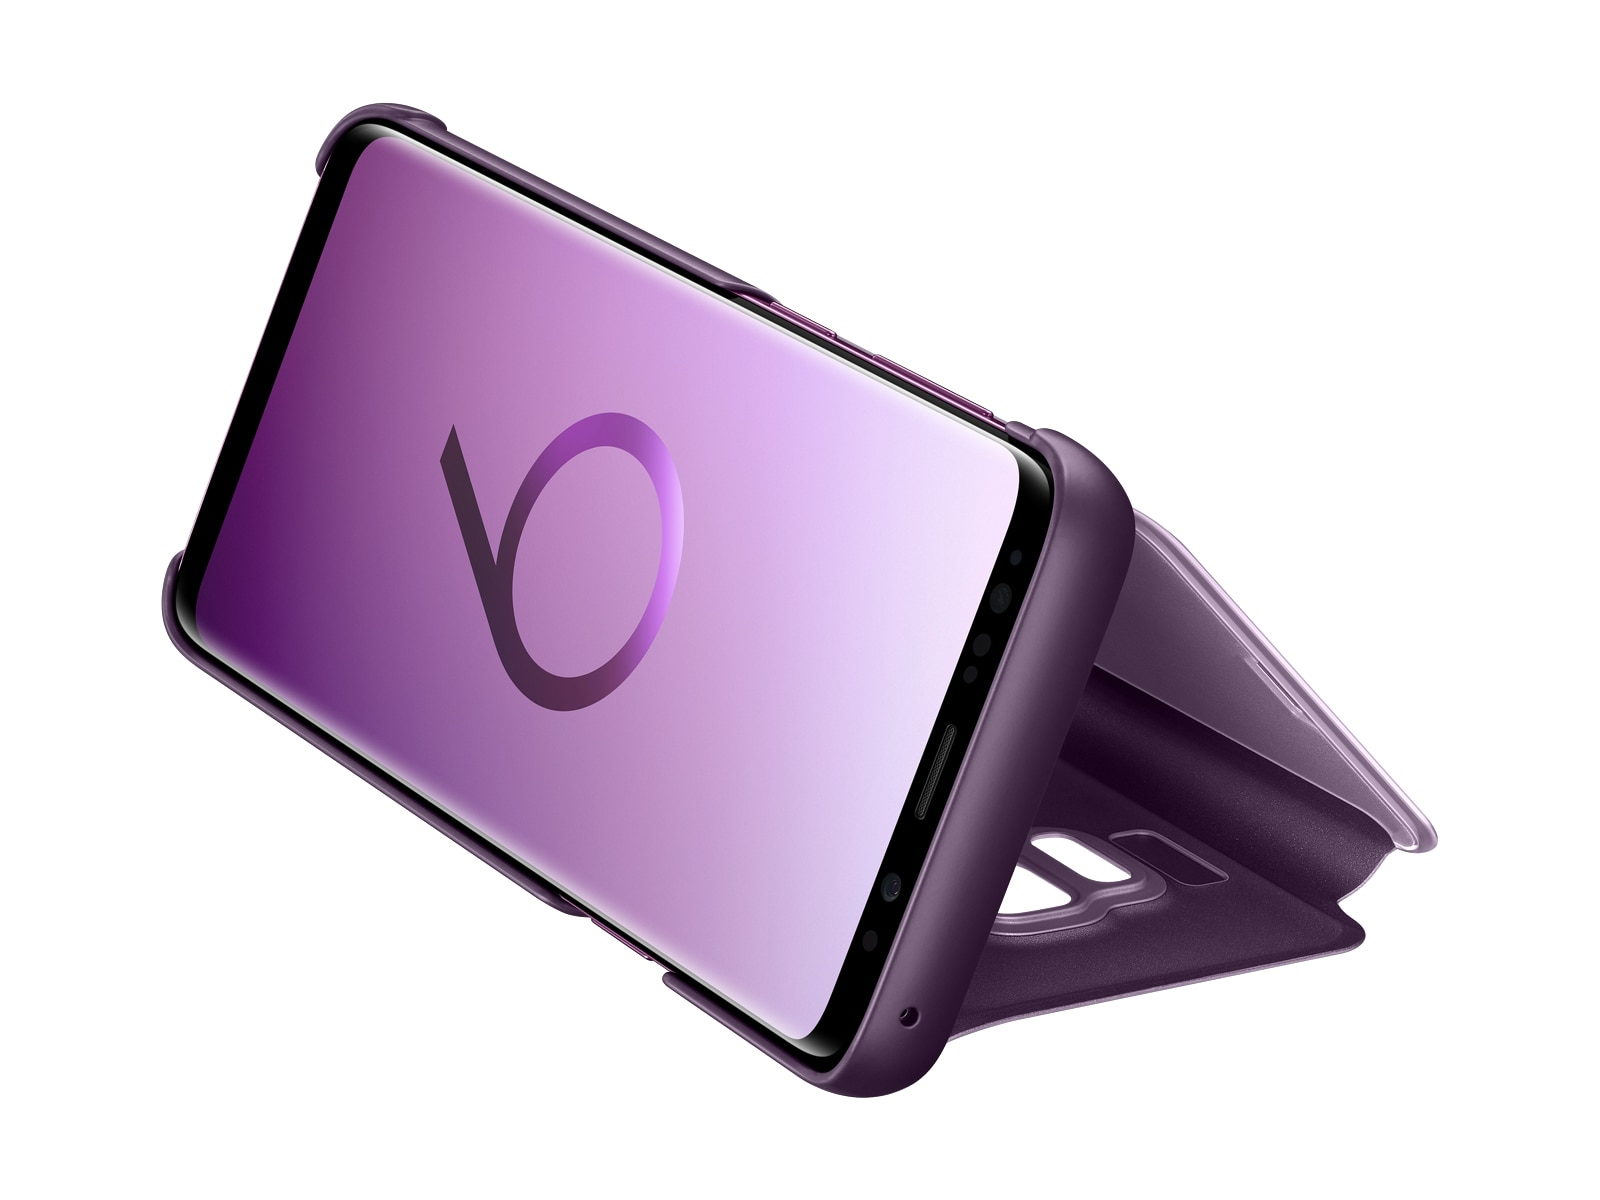 Thumbnail image of Galaxy S9 S-View Cover, Violet